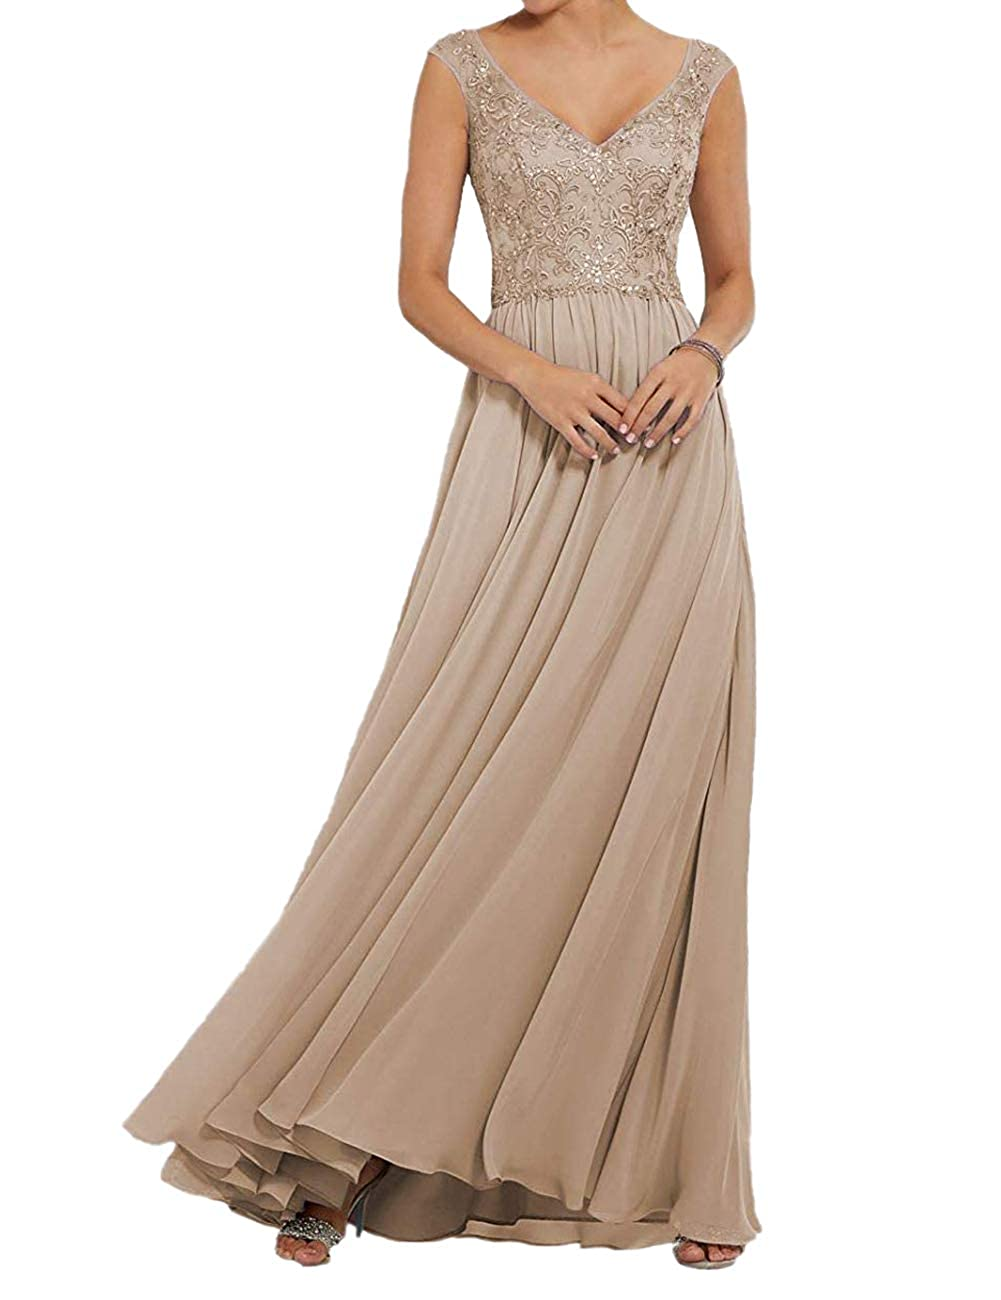 Champagne ASBridal Prom Dresses Long Sequin Quinceanera Dres Backless Formal Evening Gown with Sash